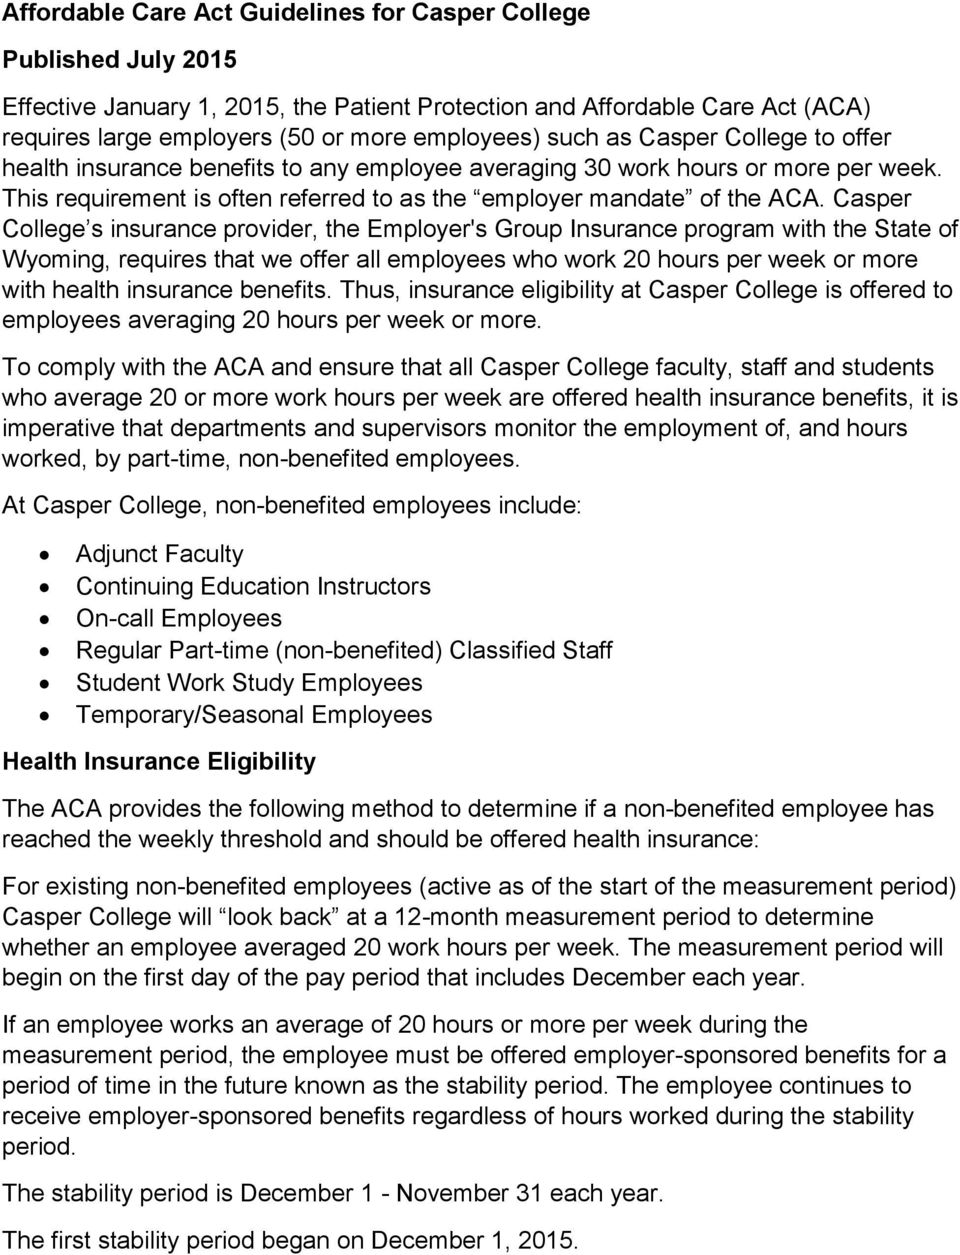 Casper College s insurance provider, the Employer's Group Insurance program with the State of Wyoming, requires that we offer all employees who work 20 hours per week or more with health insurance